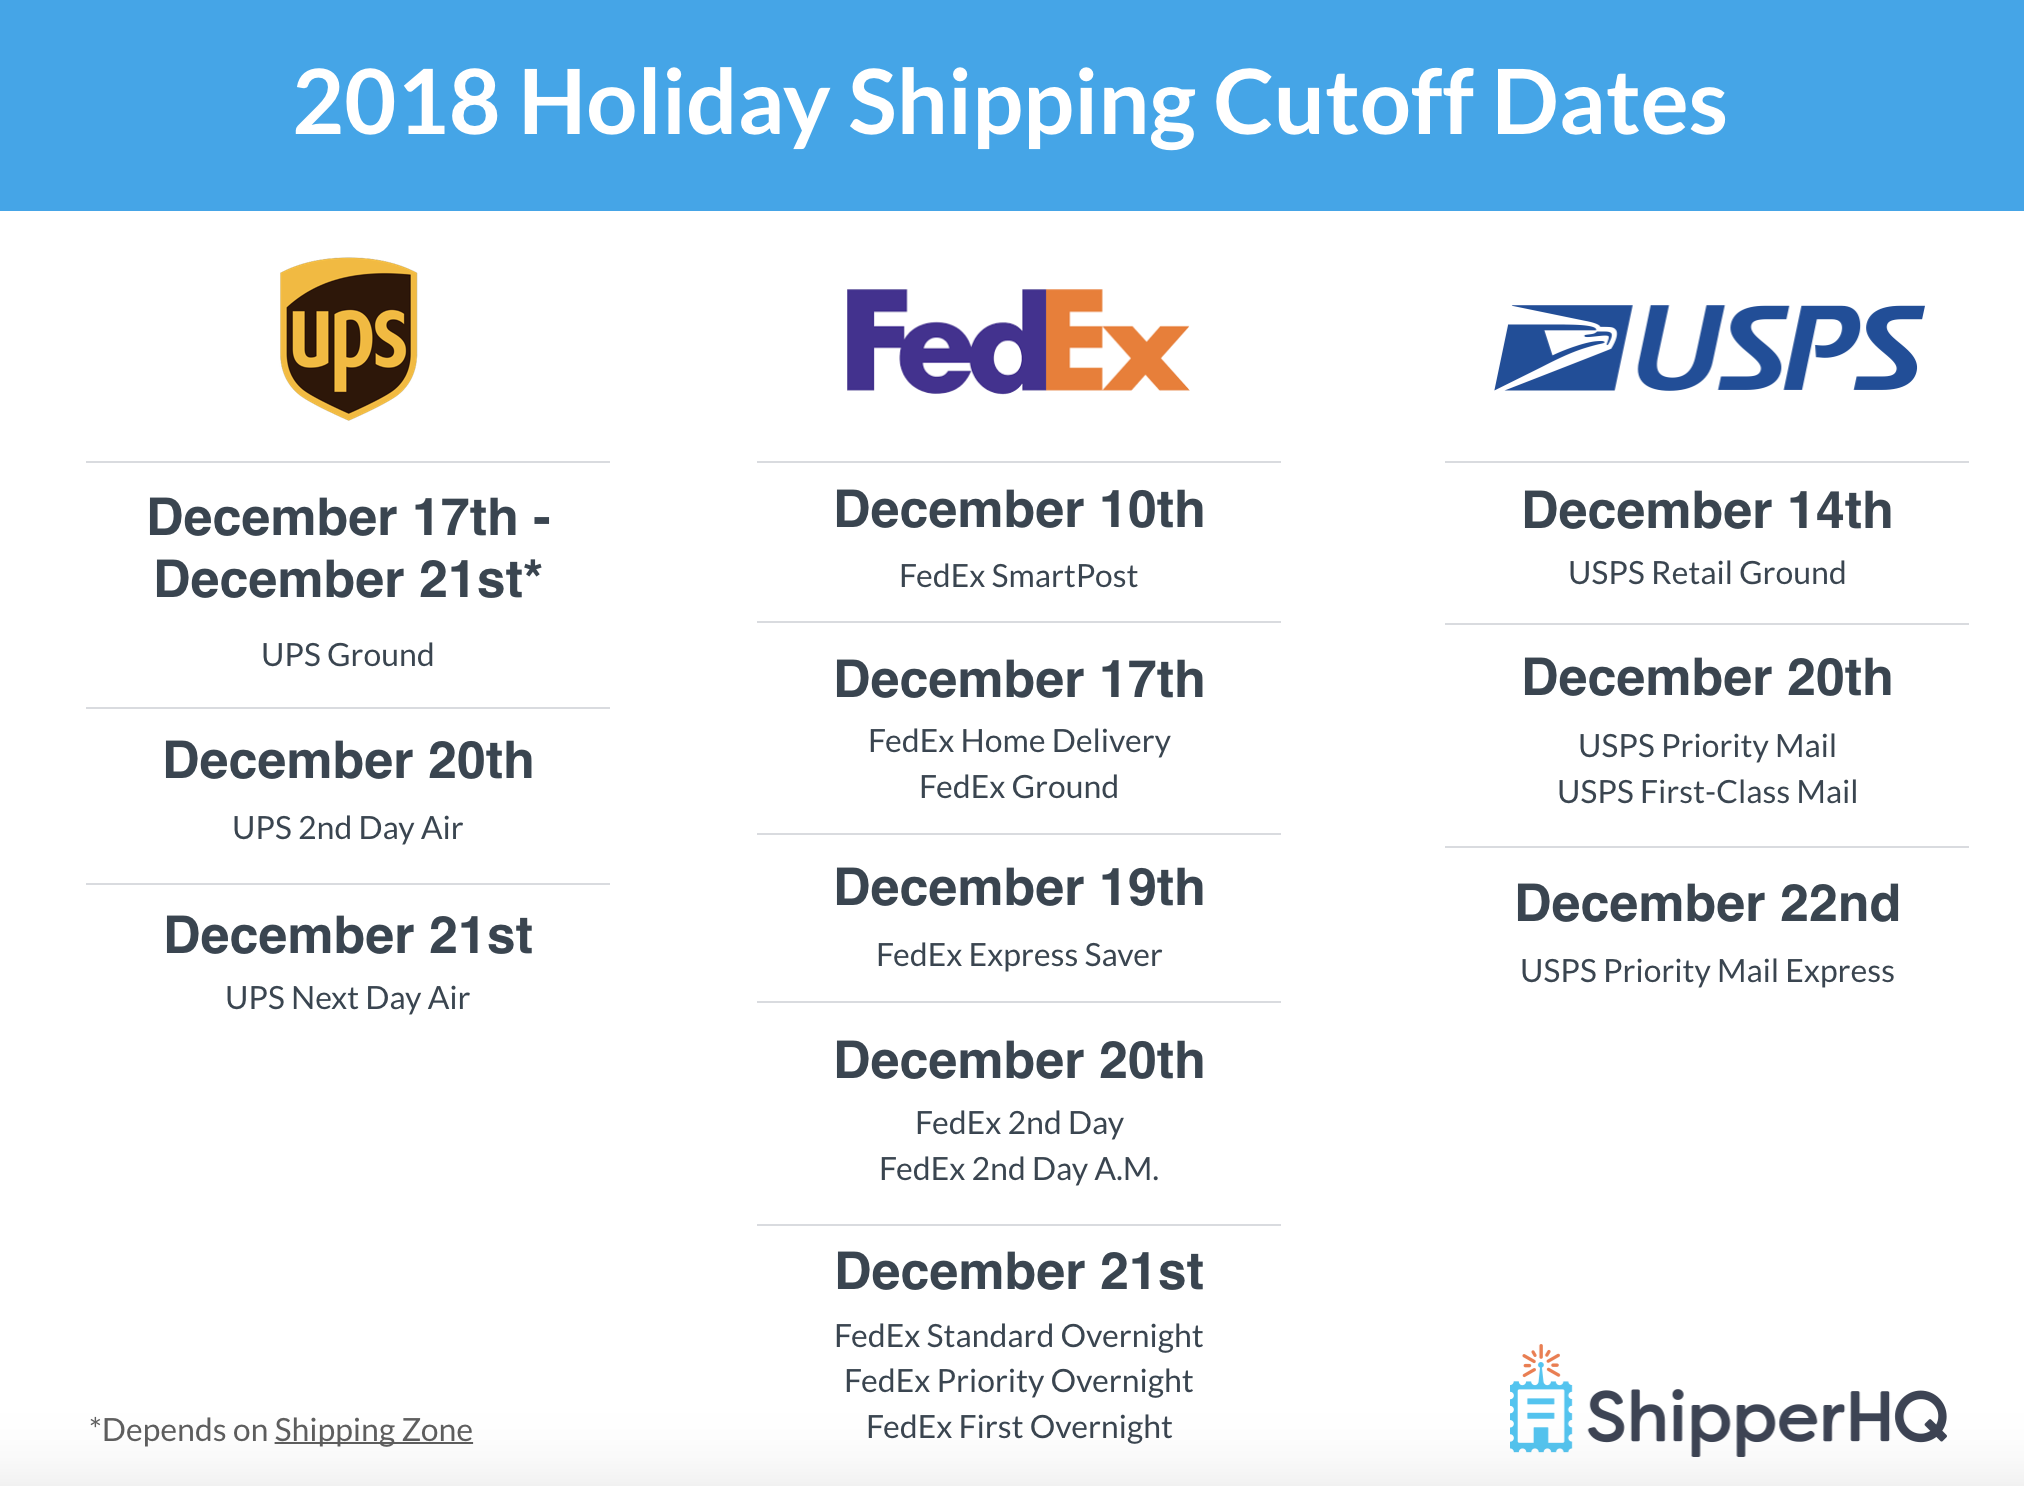 2018 Holiday Shipping Cutoff Dates for UPS, FedEx & More